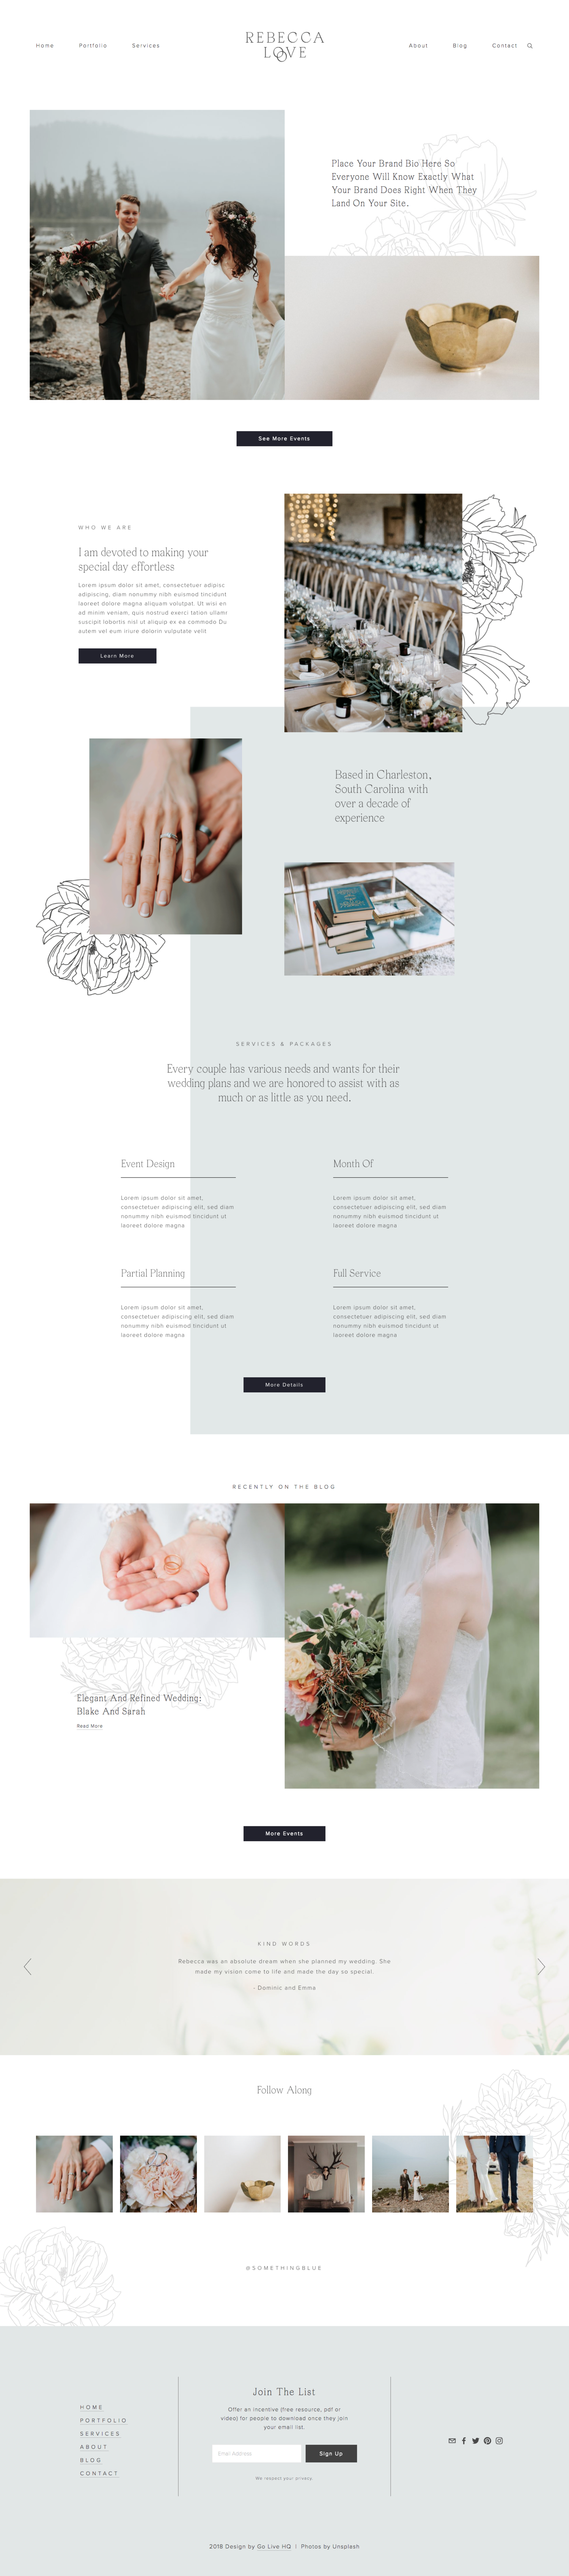 Rebecca Love Squarespace Template For Service Based Businesses Squarespace Website Templates Squarespace Templates Fun Website Design